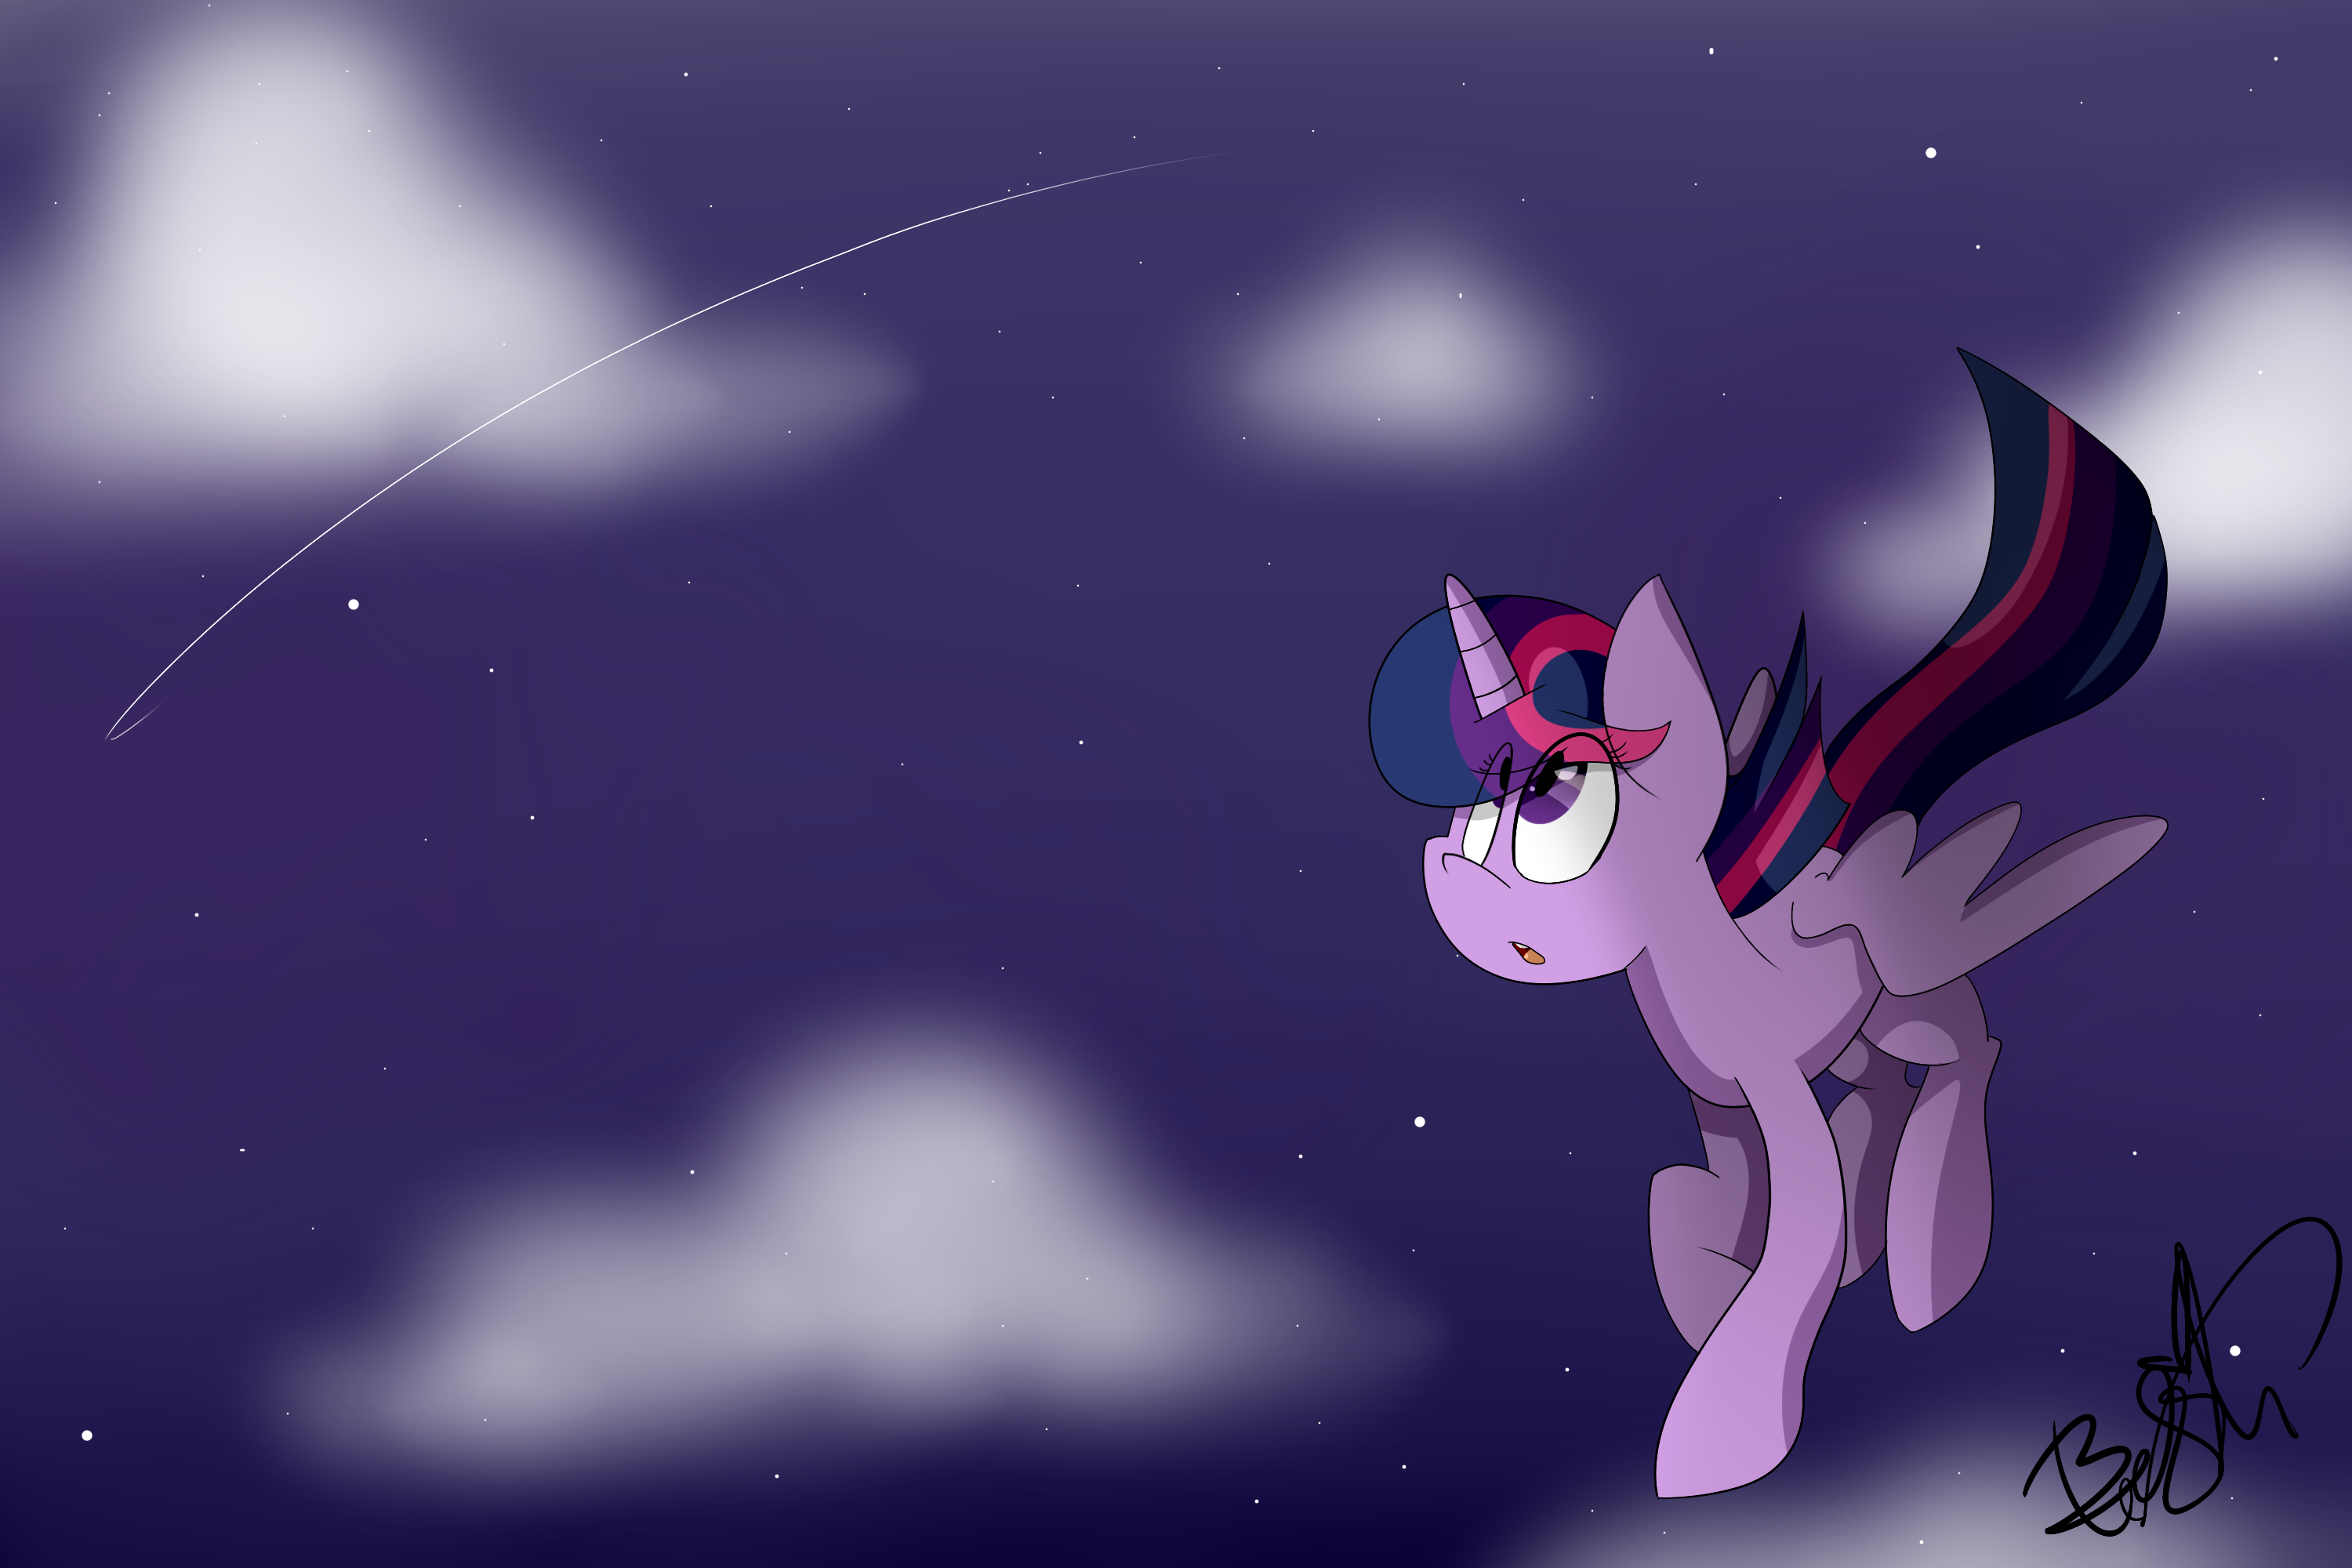 Moonlit Twilight by BefishProductions